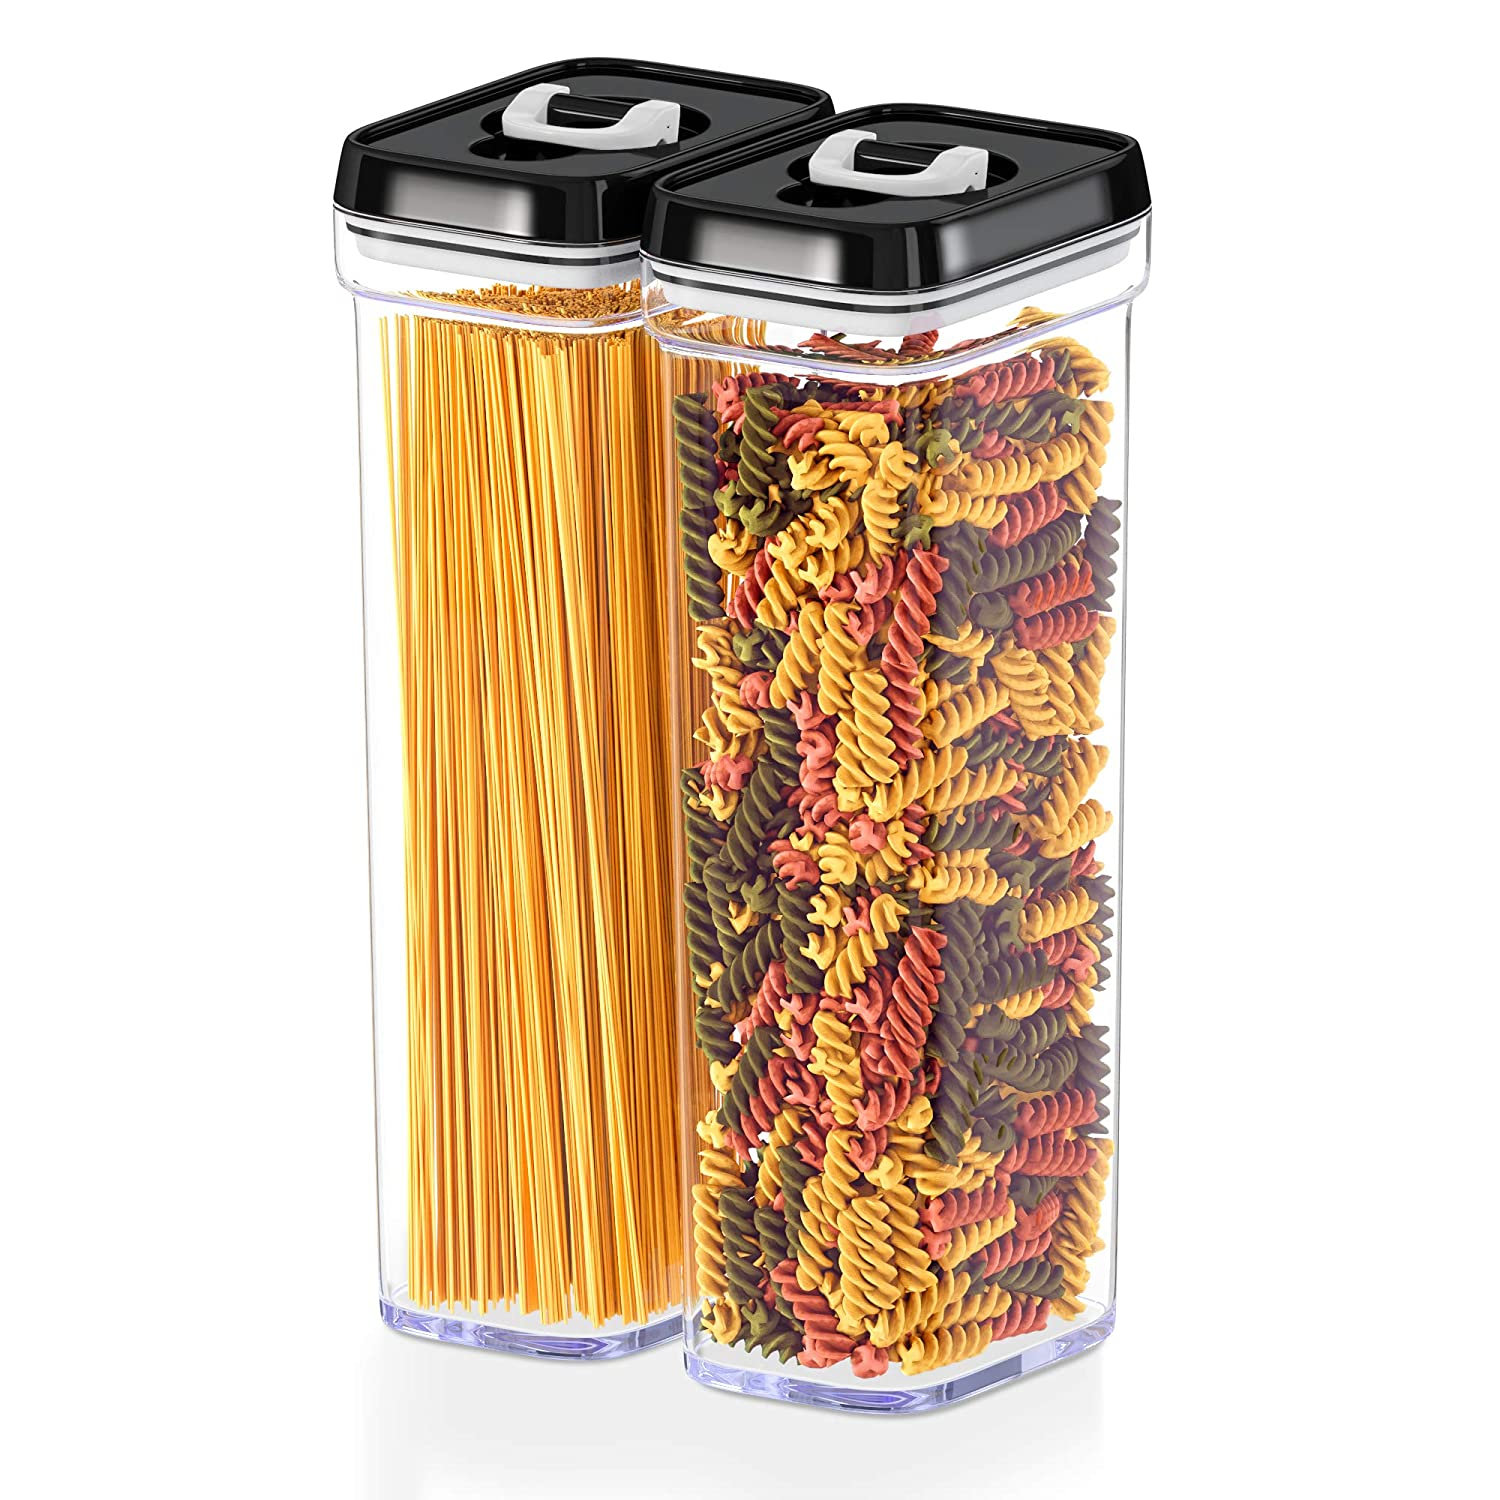 DWËLLZA KITCHEN Airtight Food Storage Containers with Lids – Same Size 2 Piece Set - Tall Air Tight Pantry & Kitchen Cereal Container for Spaghetti Noodle and Pasta - Keeps it Fresh & Dry